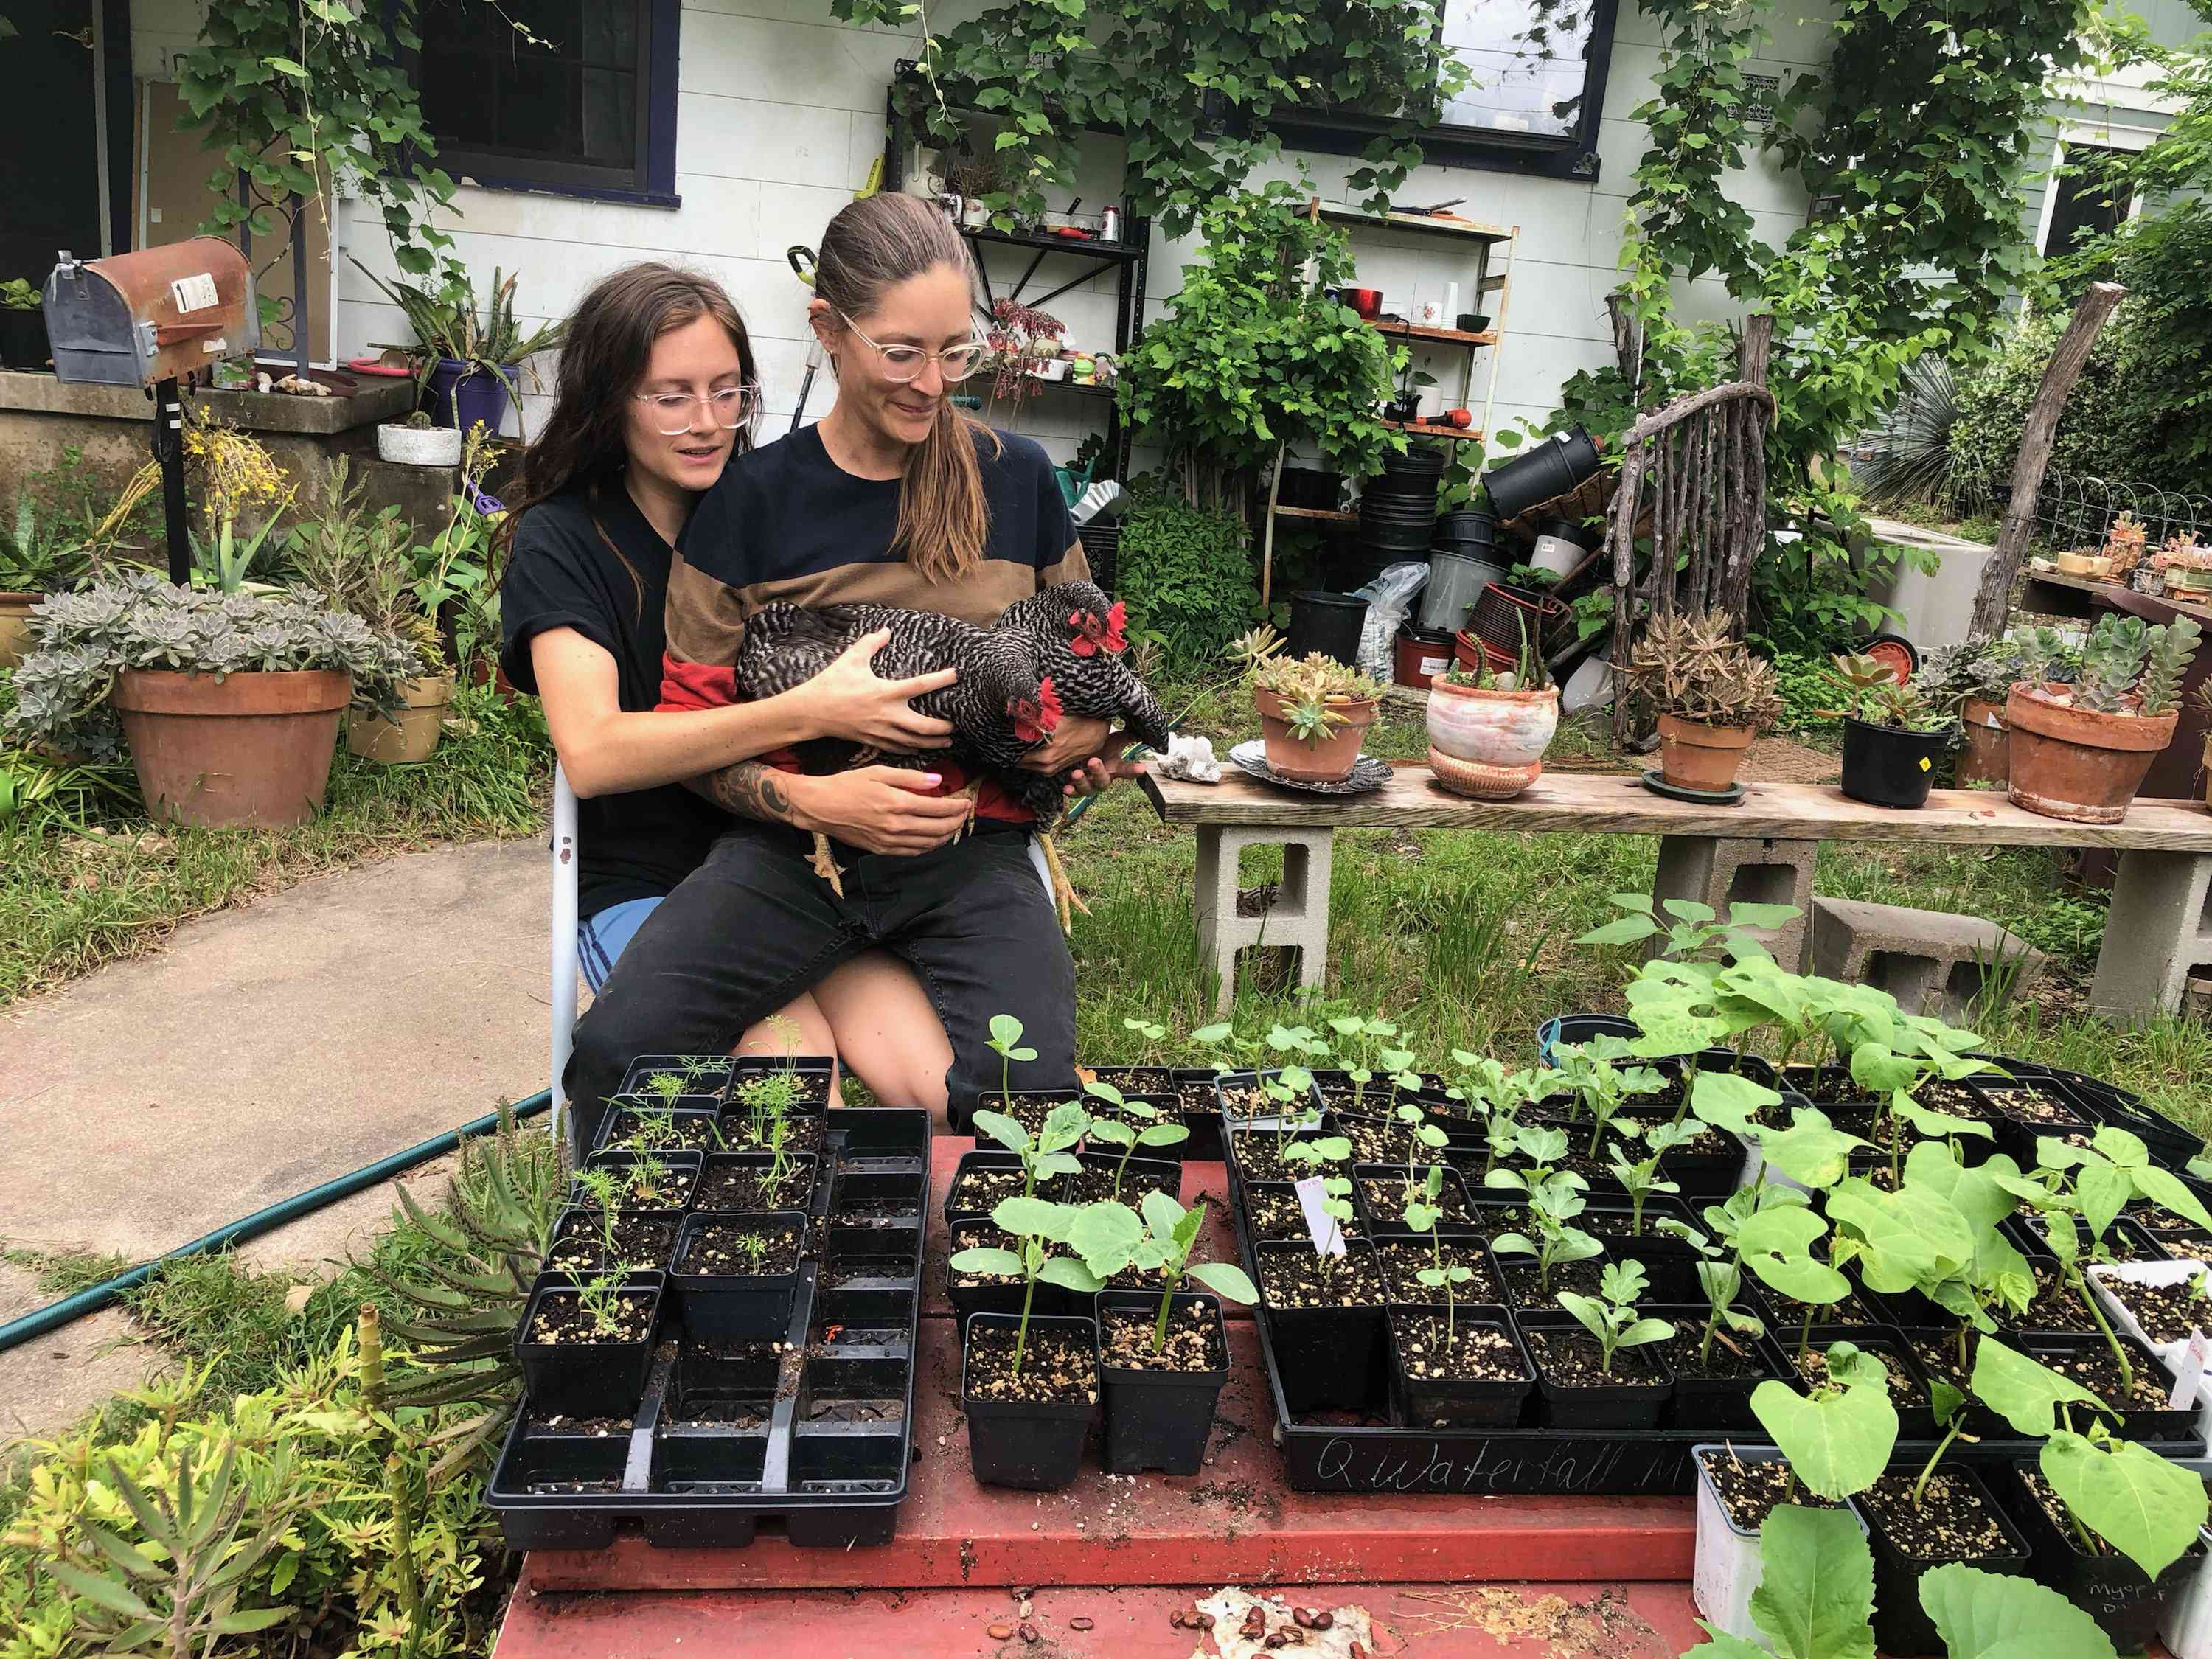 Nora Jay and Sara Wiebe from Front Yard Gardens with their plants and chickens